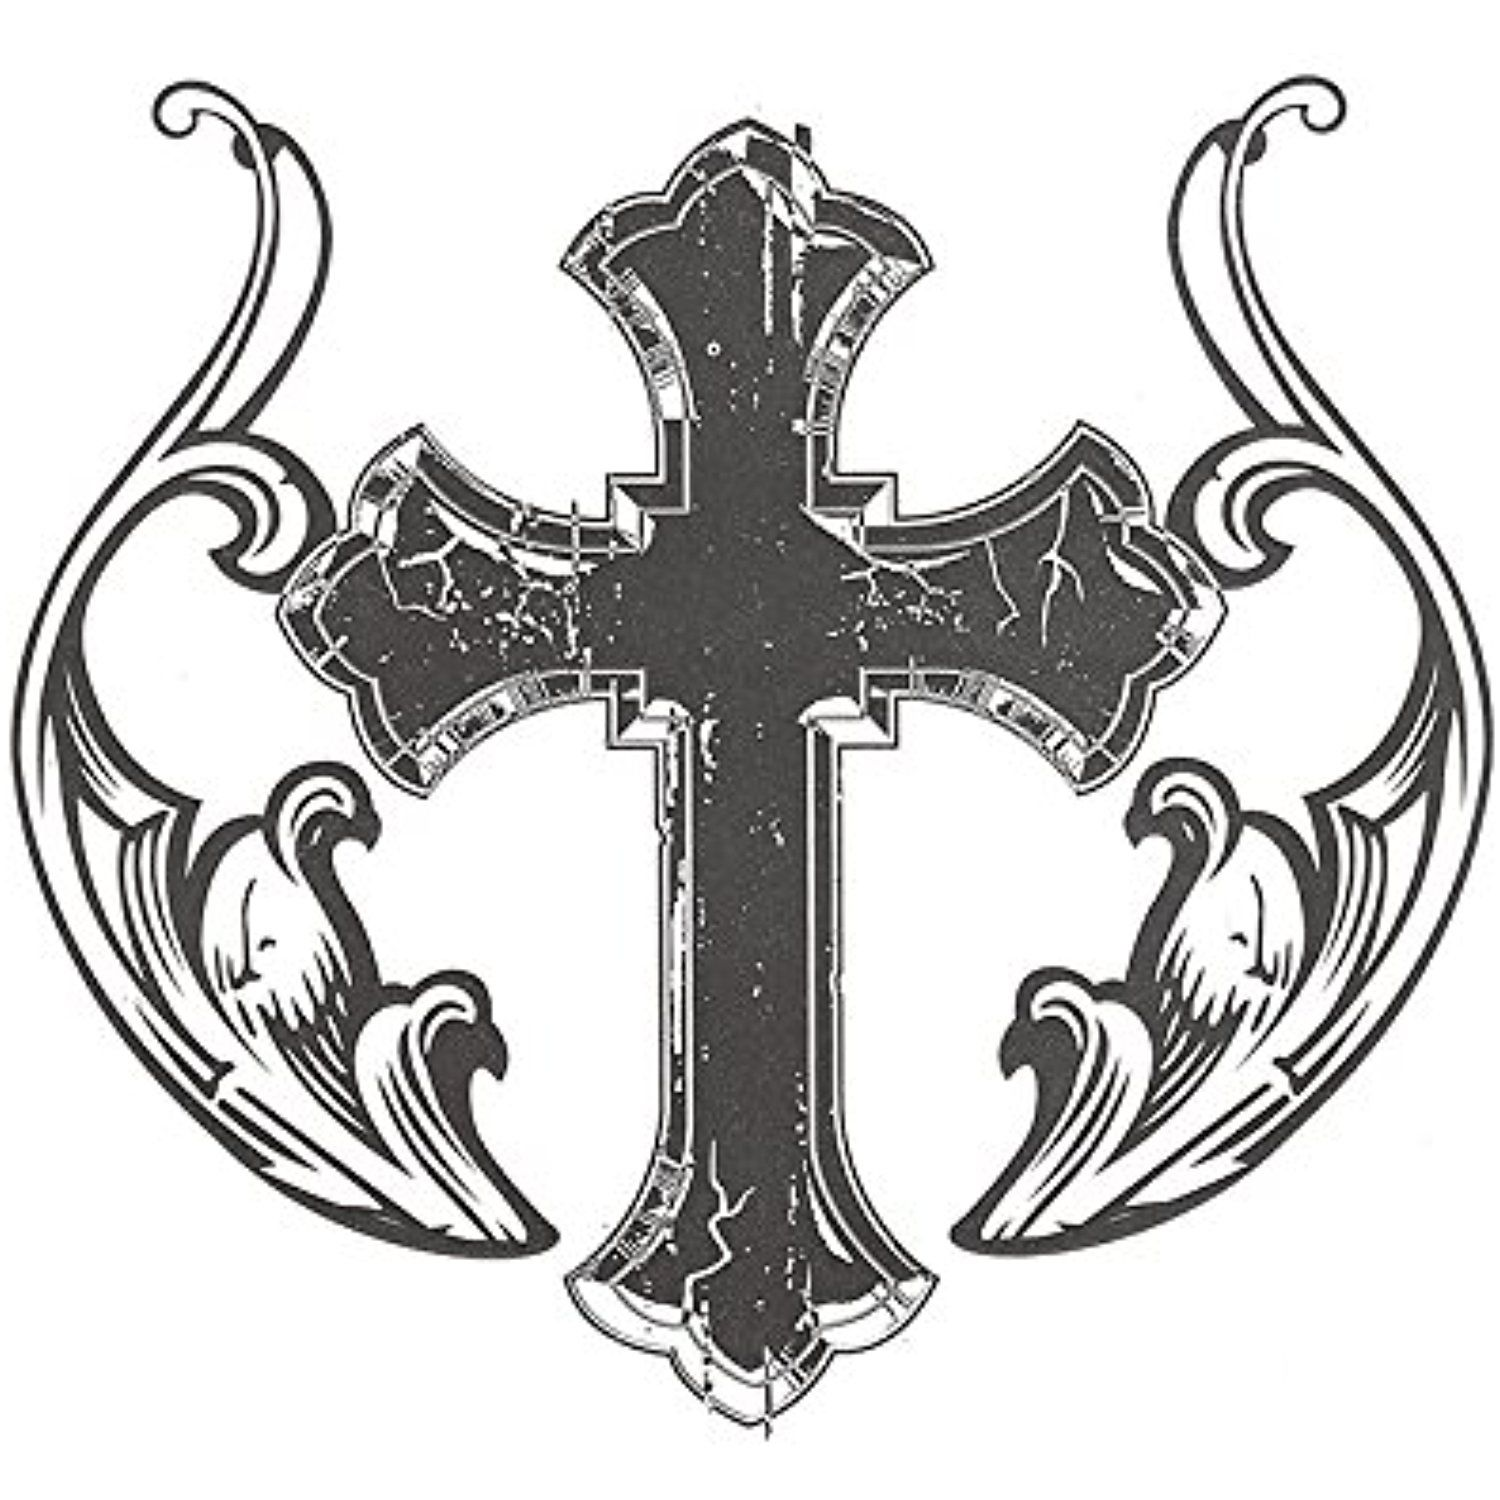 1500x1500 Set Of 2 Waterproof Temporary Tattoo Stickers 3d Black Holy Cross